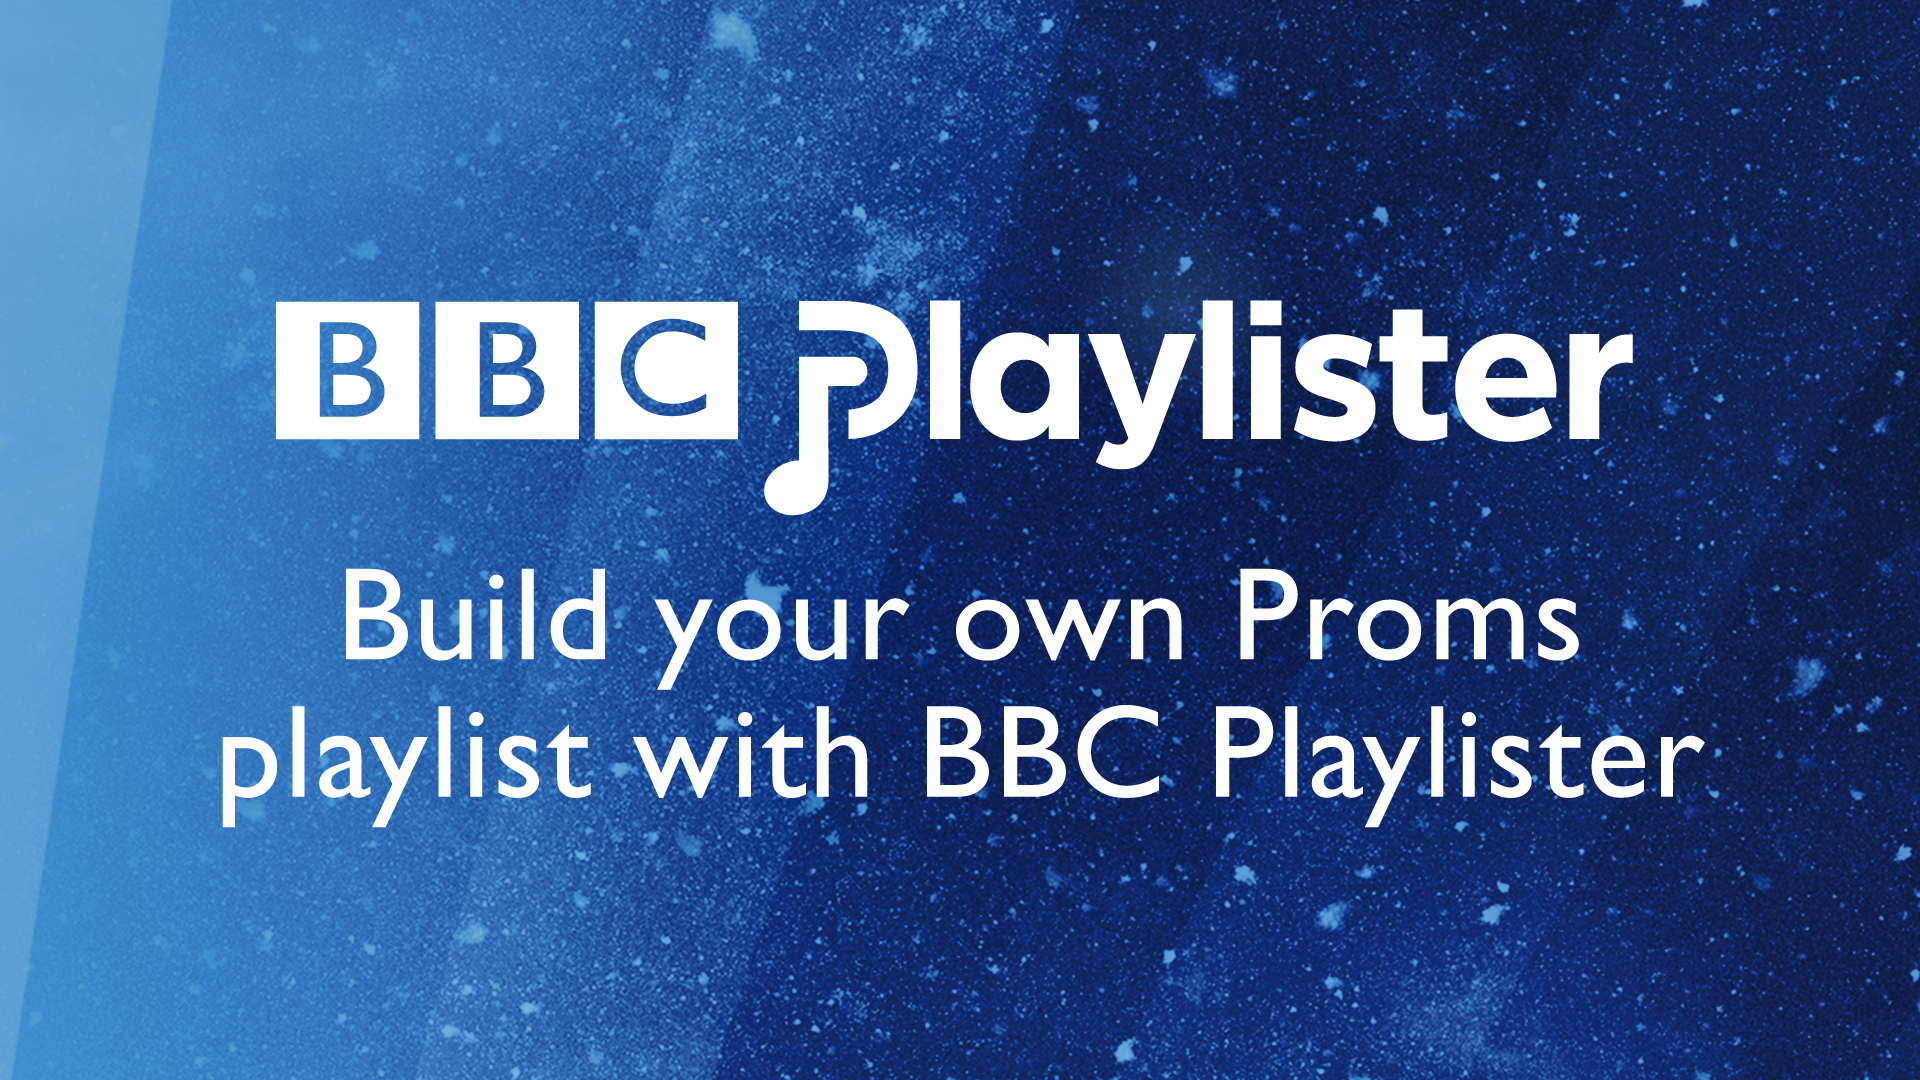 Build your own Proms playlist with BBC Playlister.